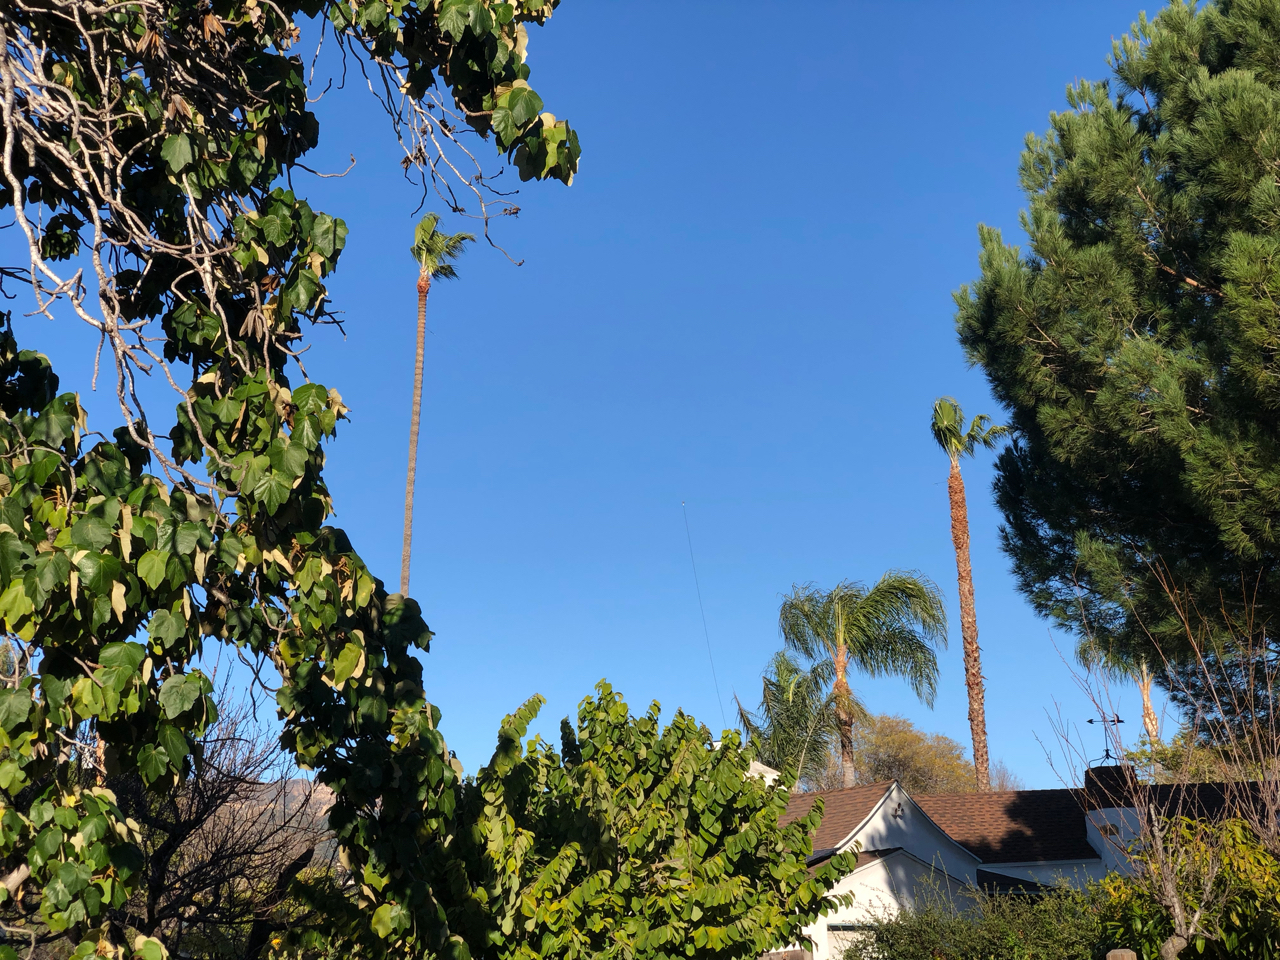 Dipole antenna strung between the Palm trees.